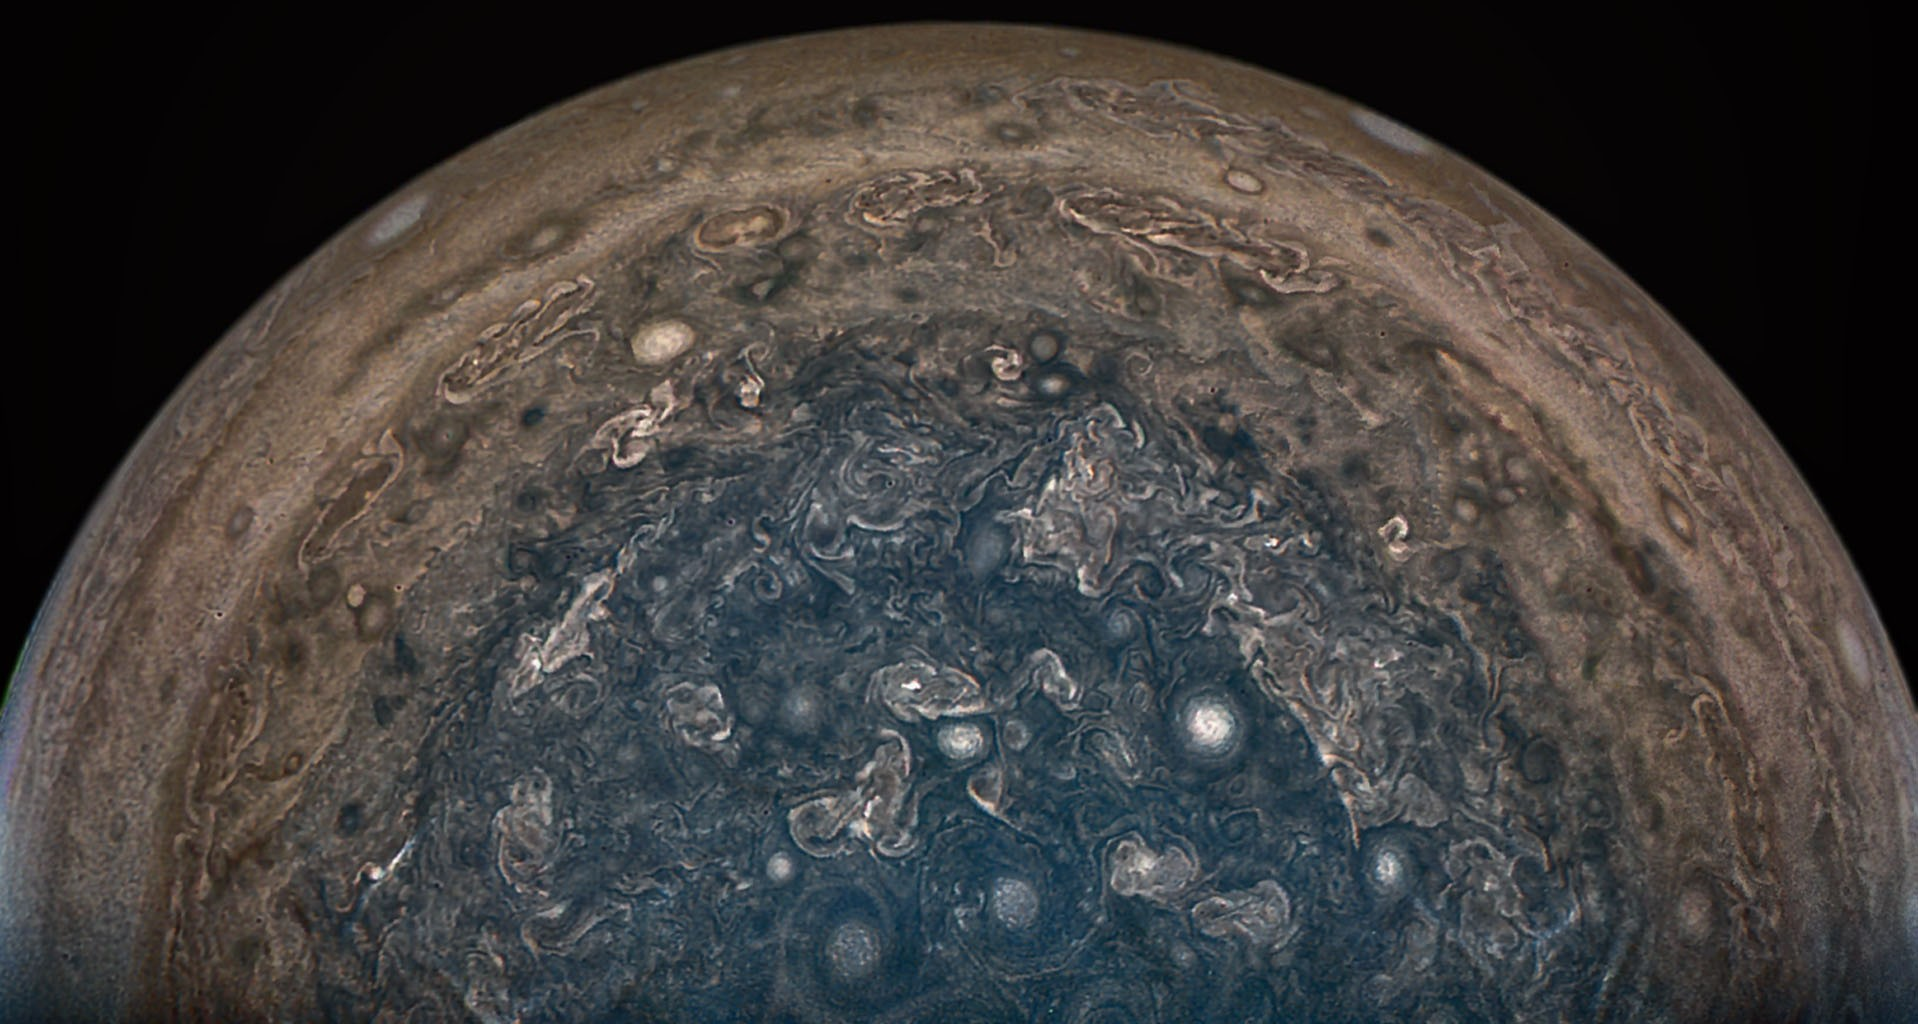 The Juno spacecraft has revealed images of Jupiter's poles, completely different from previous views of its stripy bands and Great Red Spot.Credit: NASA/JPL-Caltech/SwRI/MSSS/John Landino